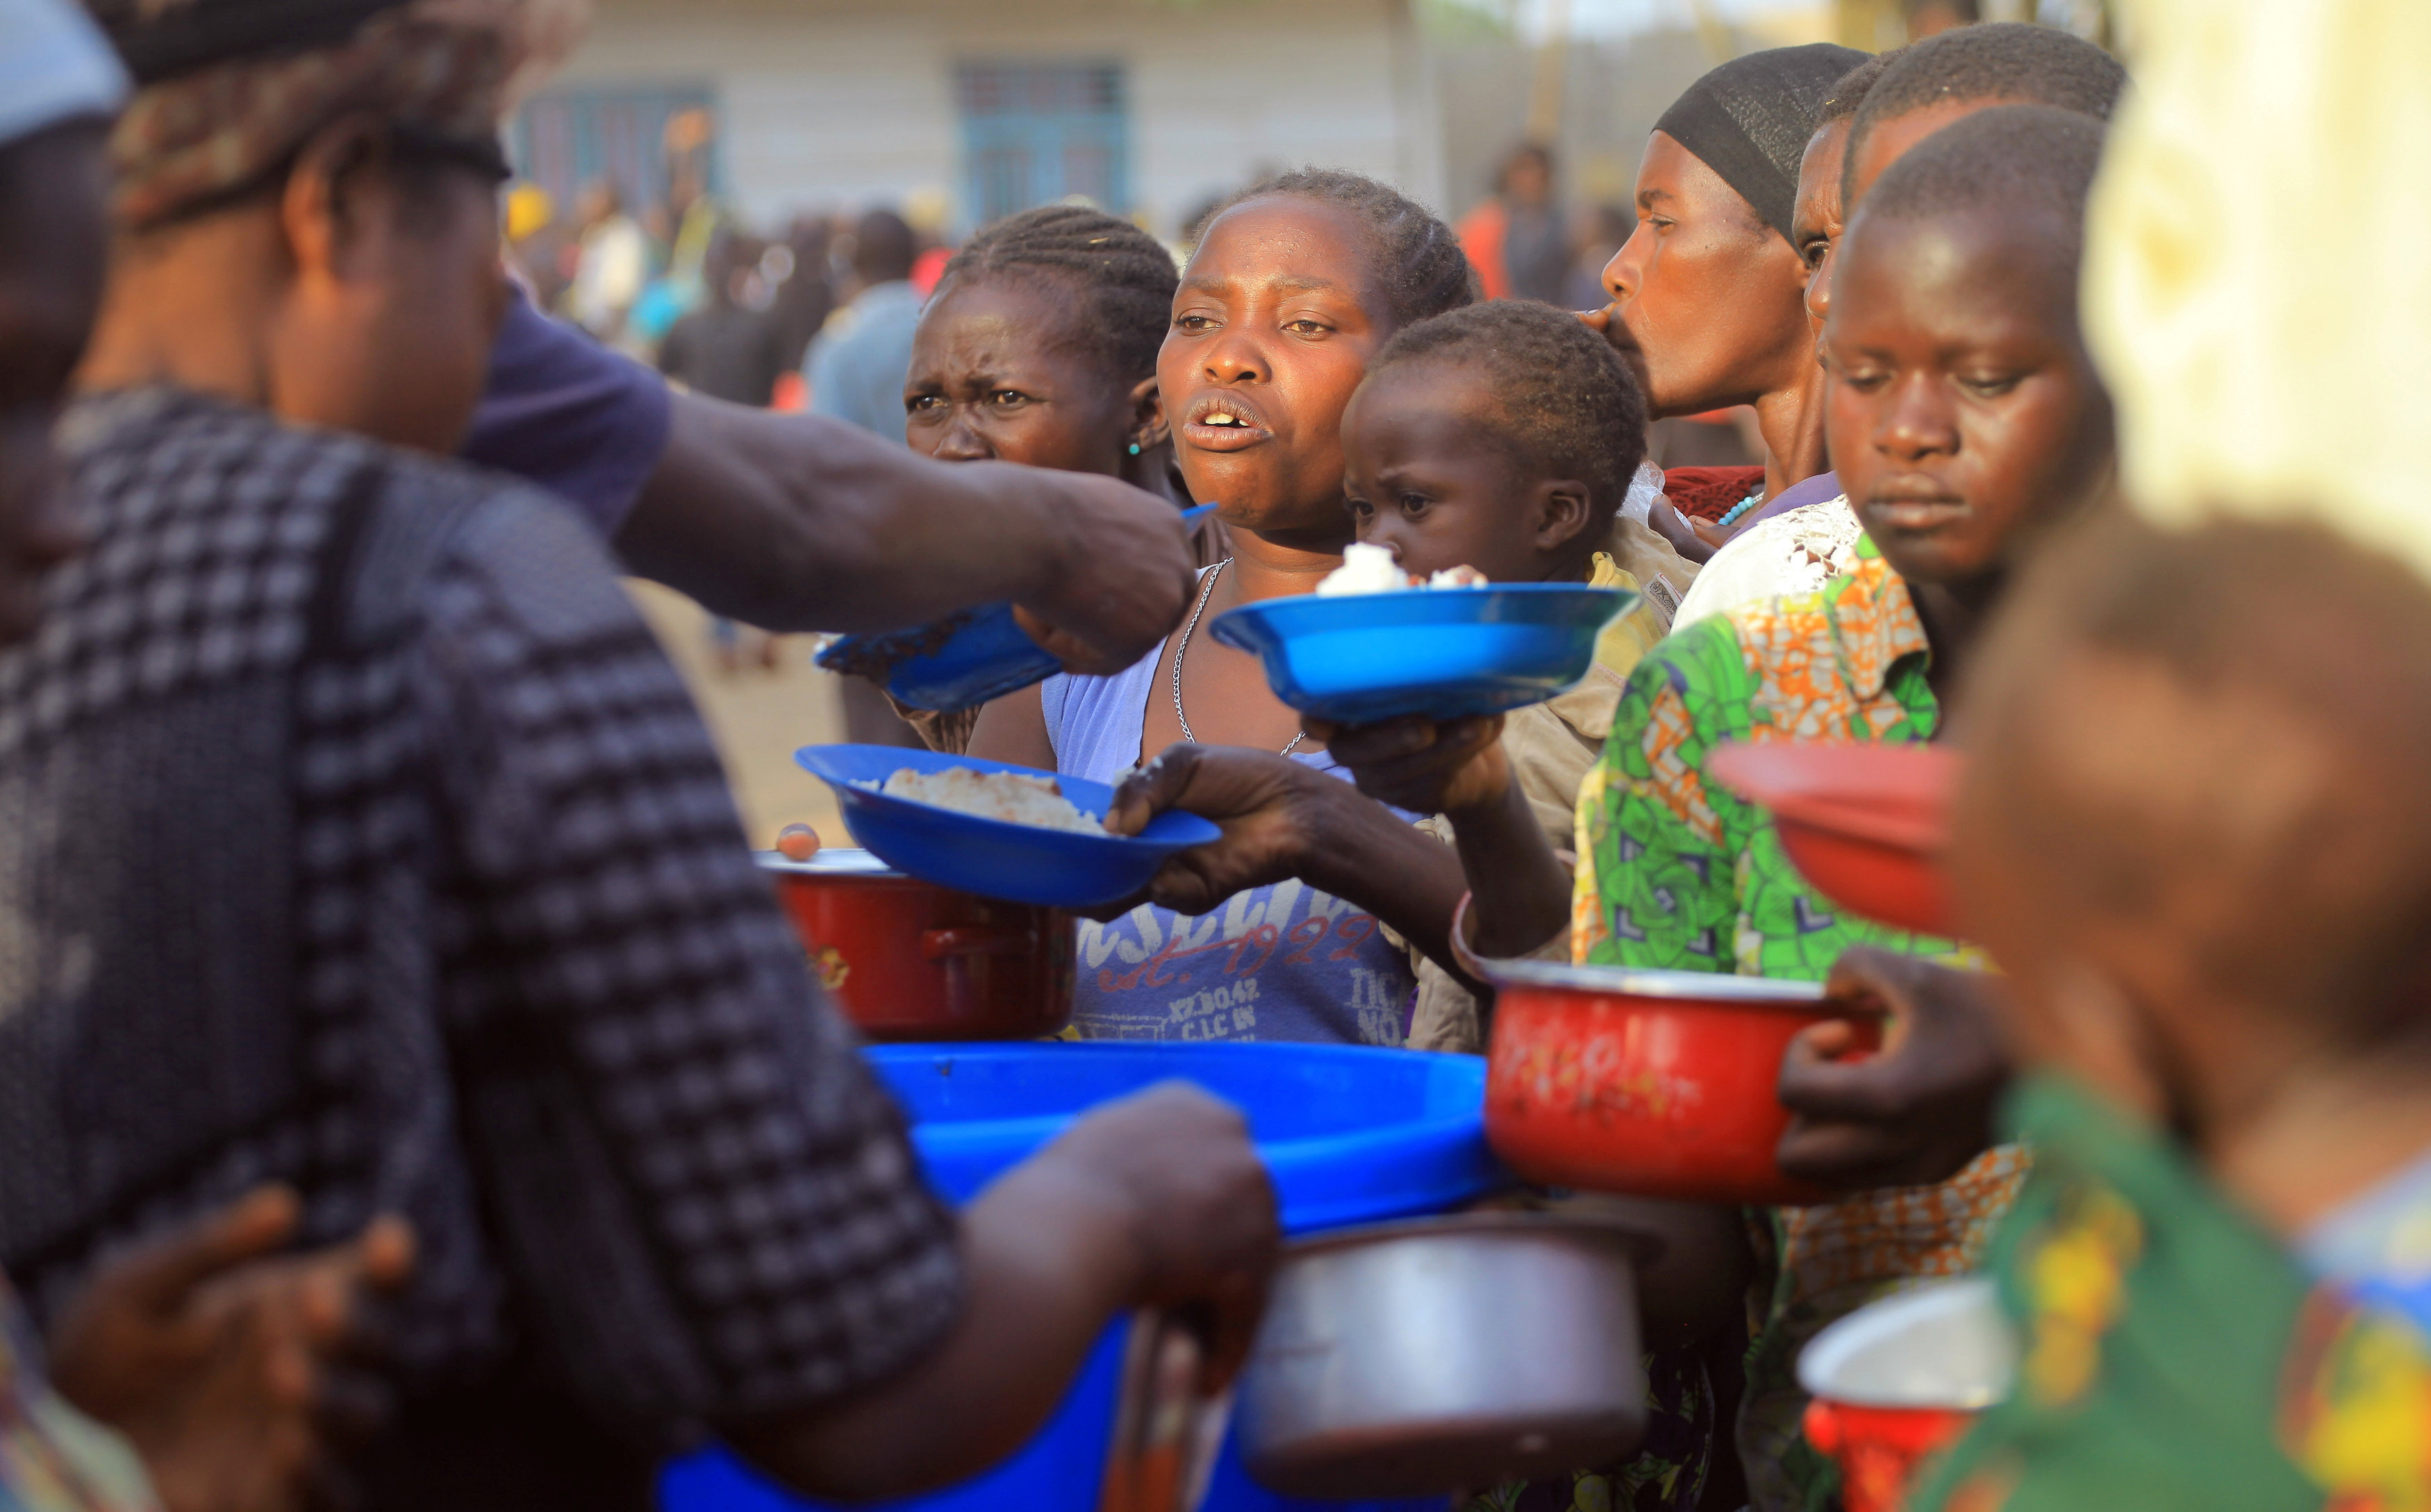 Internally displaced Congolese civilians receive food aid at Medecins Sans Frontieres (MSF) centre in Bunia, eastern Democratic Republic of Congo February 16, 2018. Picture taken February 16, 2018. REUTERS/Stringer